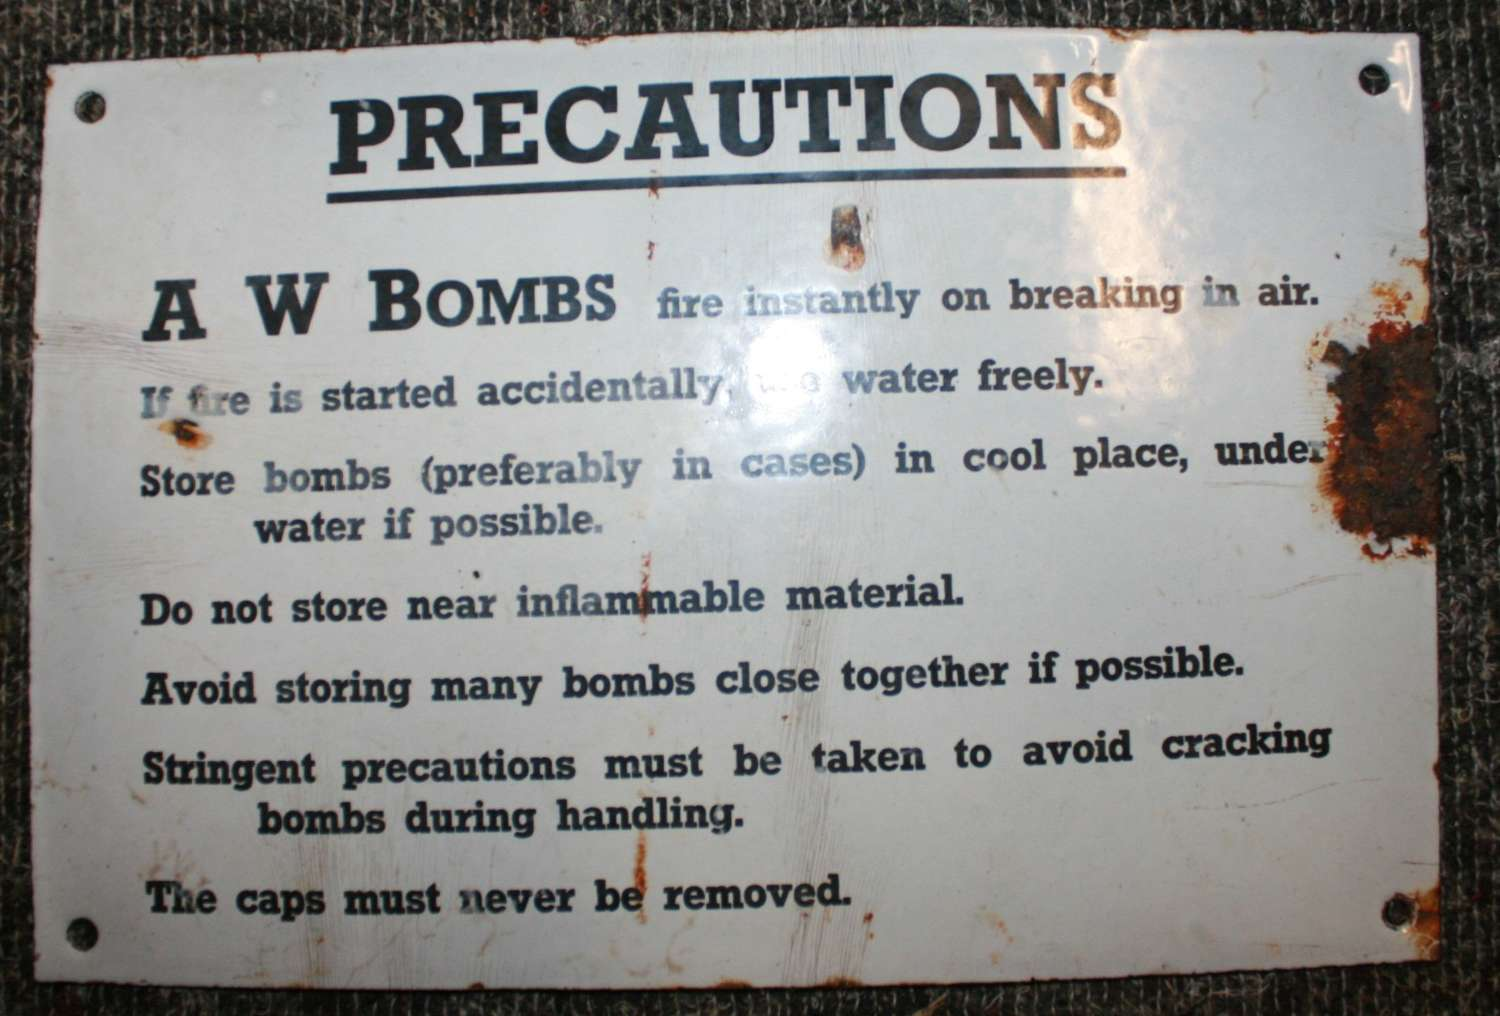 A WWII AW BOMB SIGN